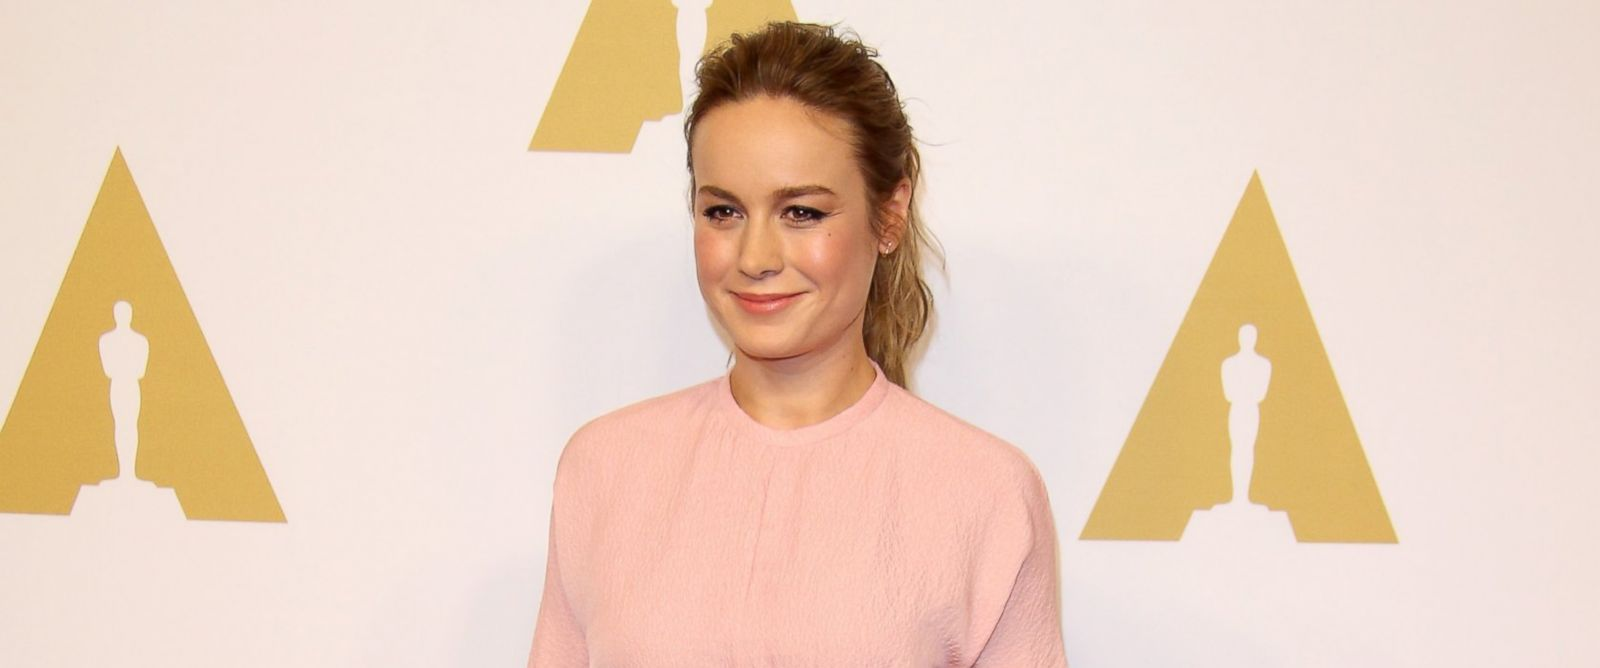 PHOTO: Actress Brie Larson attends the 88th Annual Academy Awards Nominee Luncheon in Beverly Hills, Calif., Feb. 8, 2016.